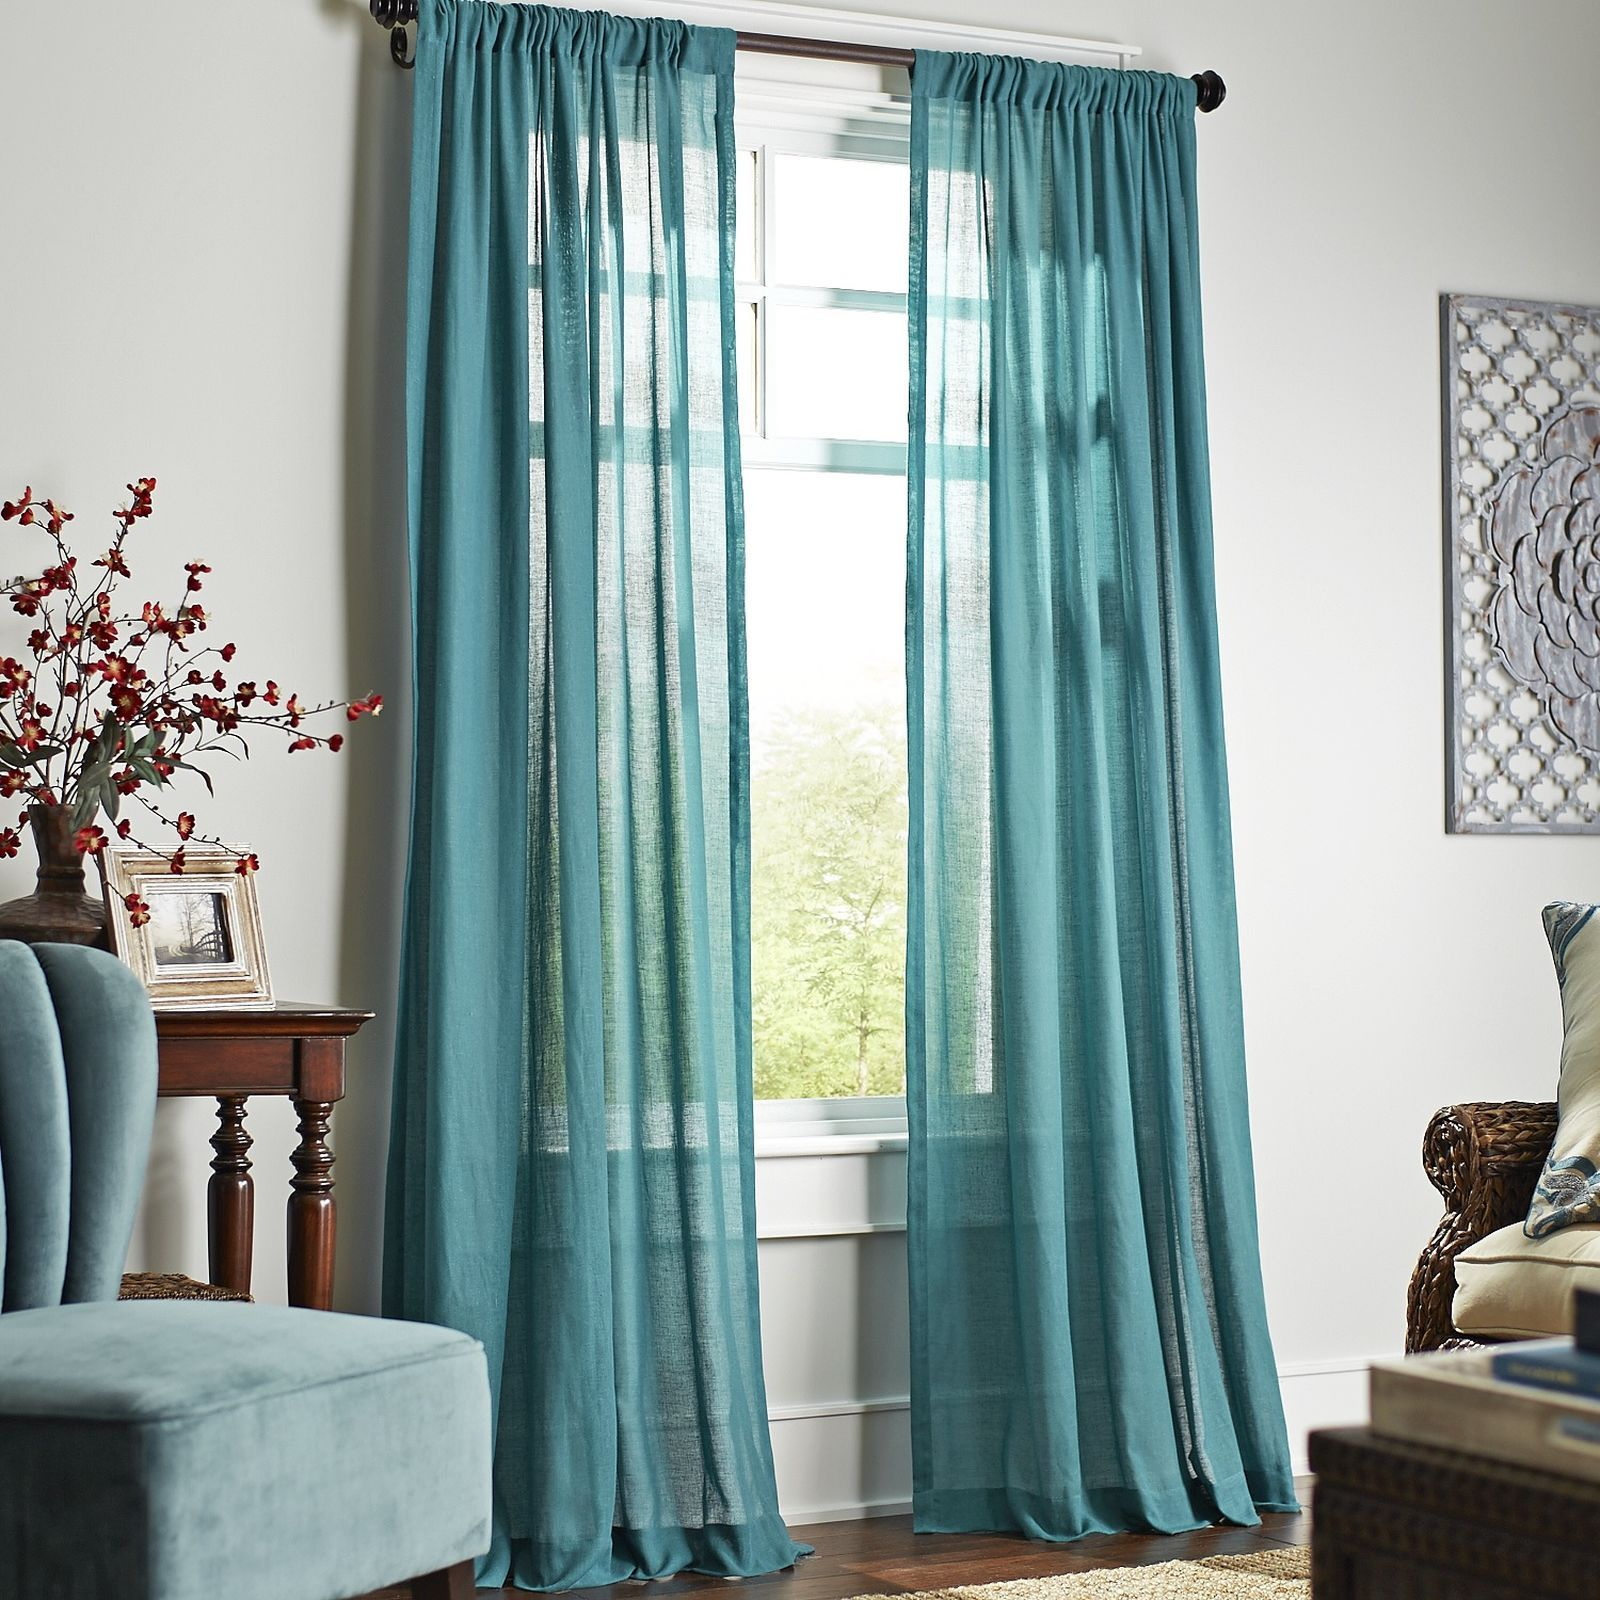 Quinn Sheer Curtain   Teal | Pier 1 Imports